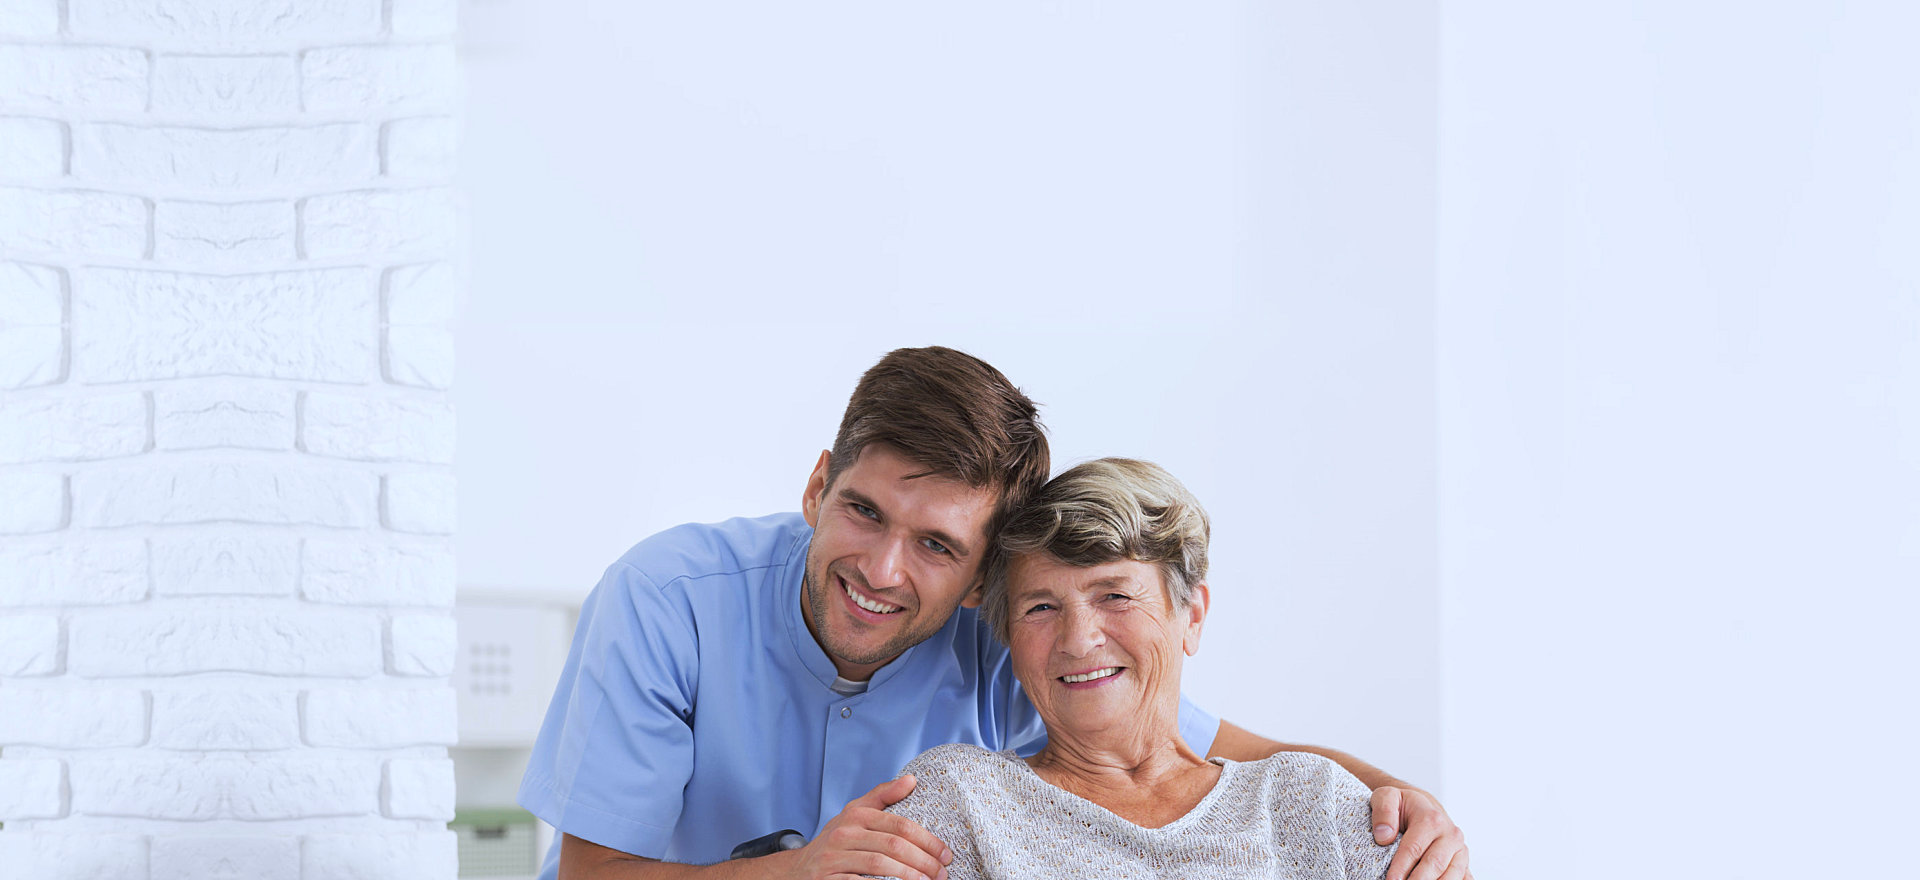 an elderly woman smiling with her caregiver